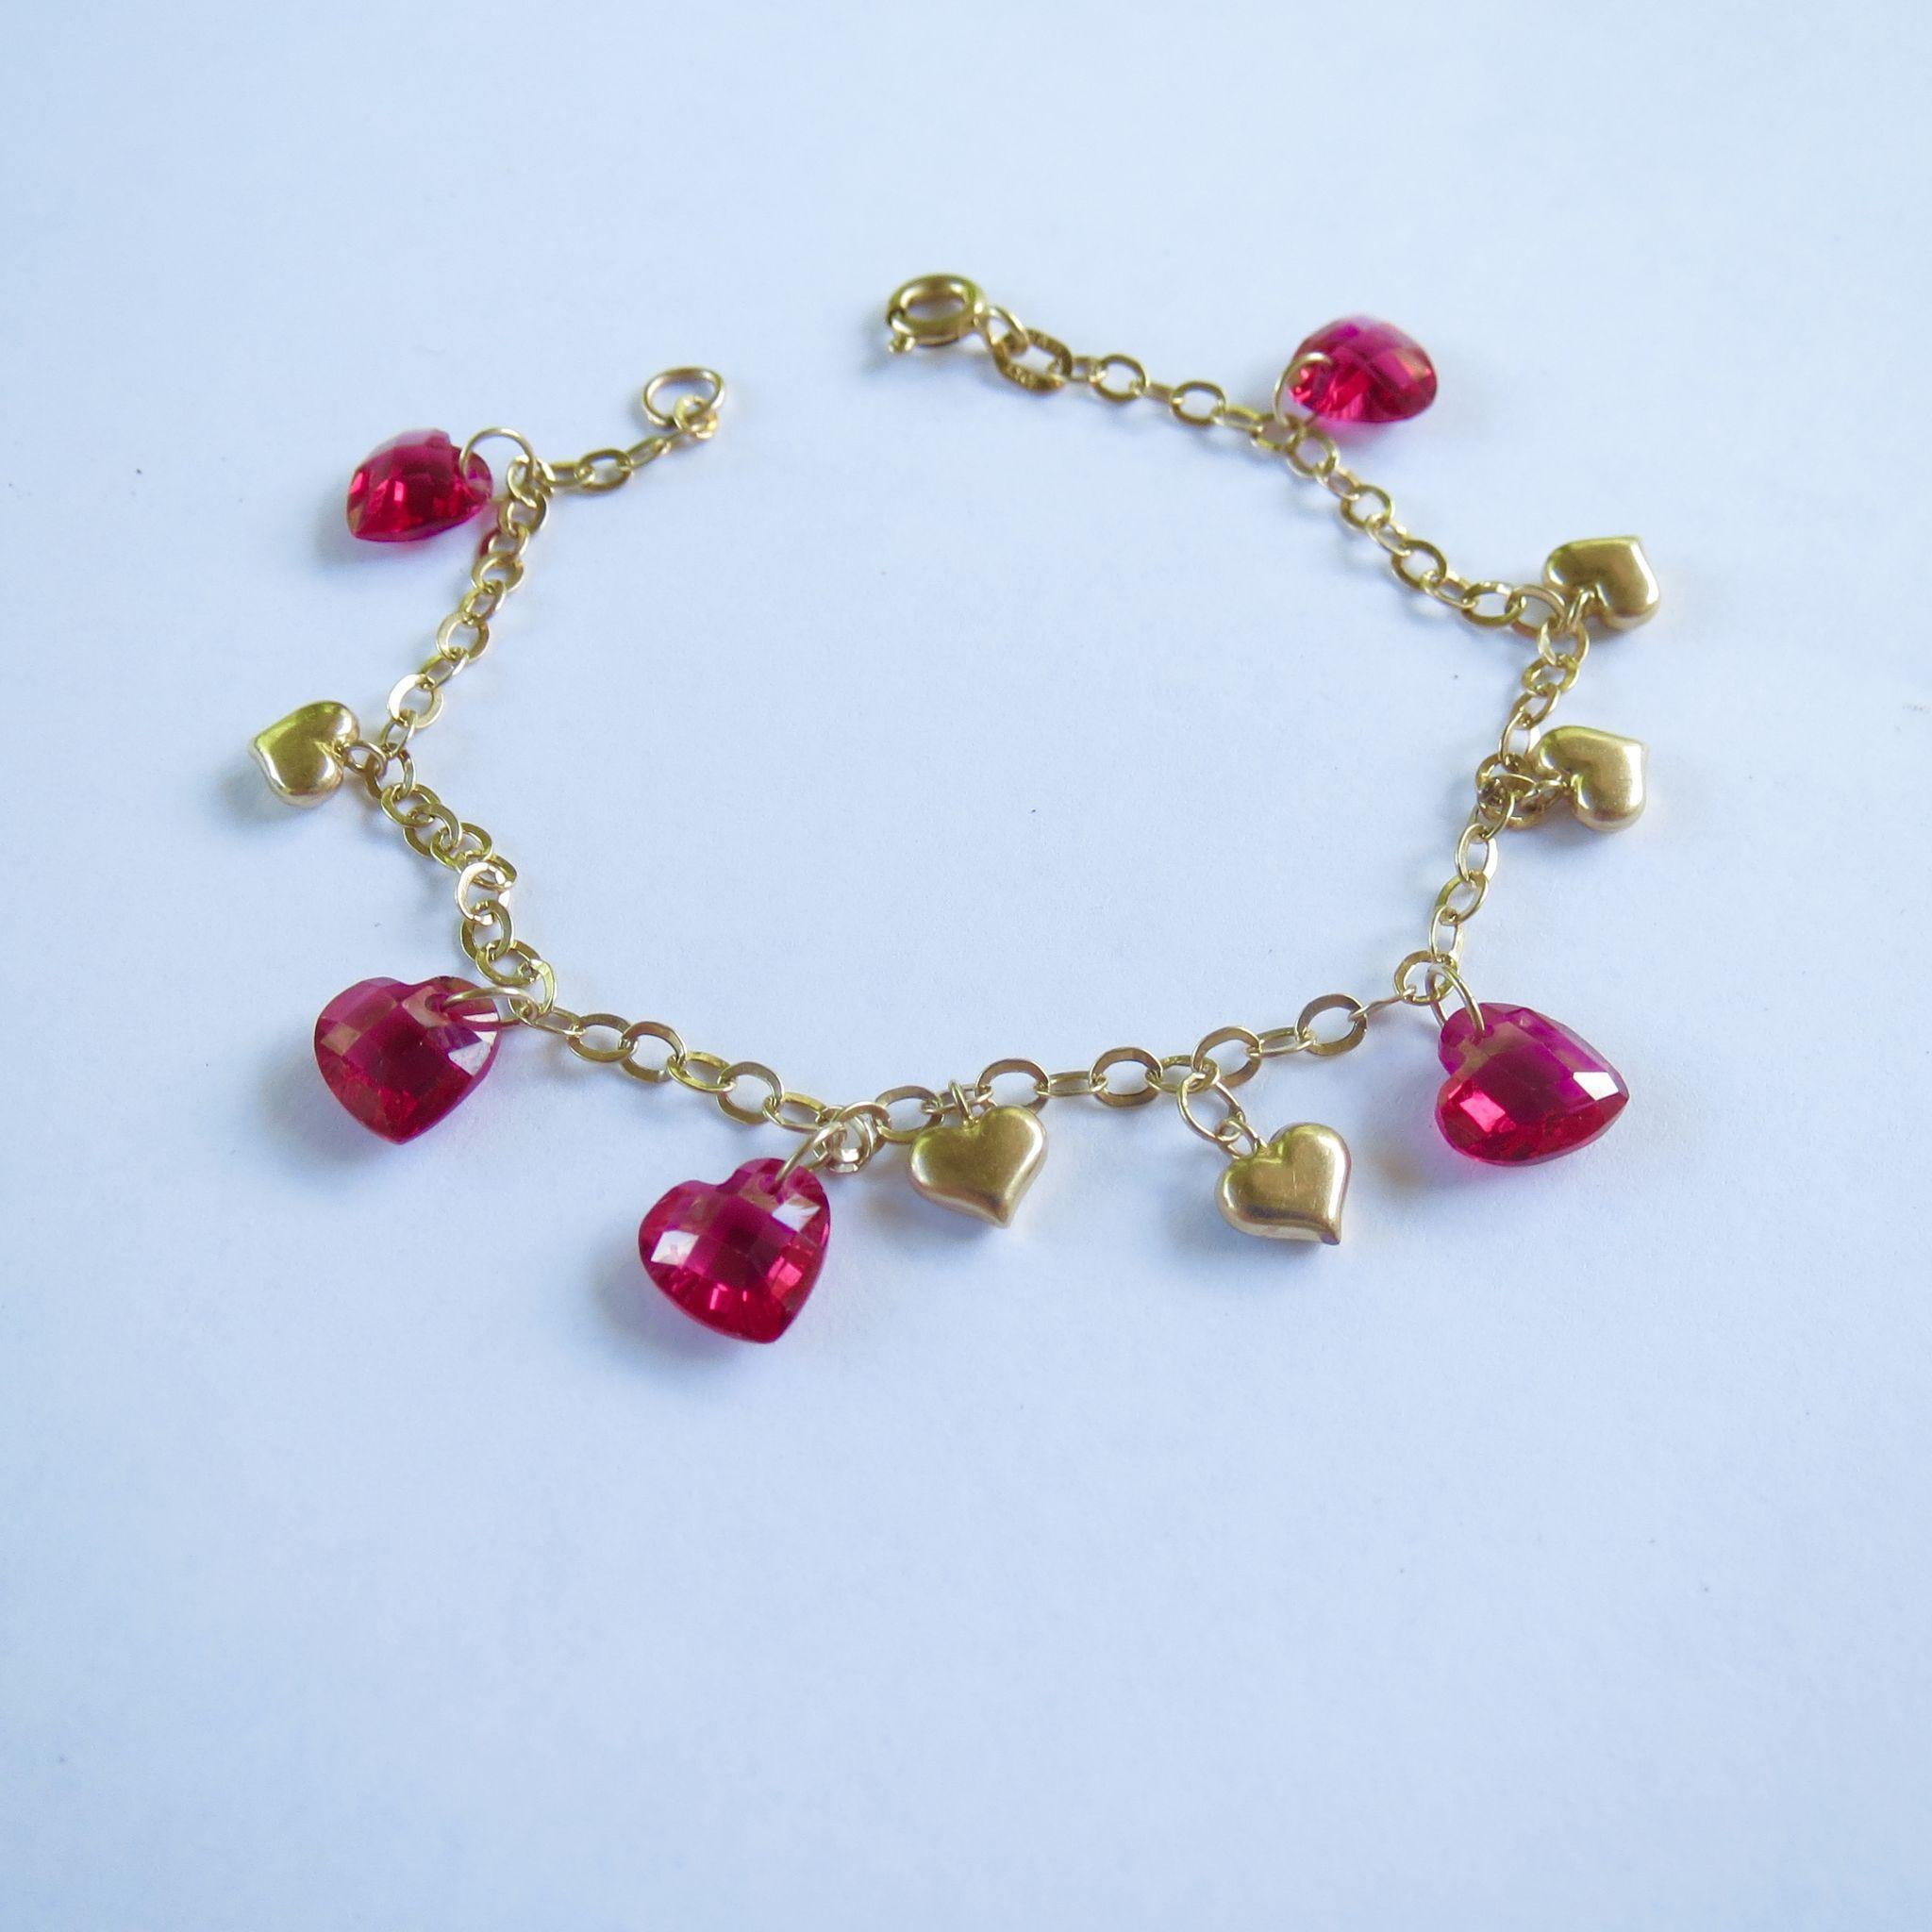 10K Gold and Ruby Crystal Heart Charm Bracelet 7 inches from